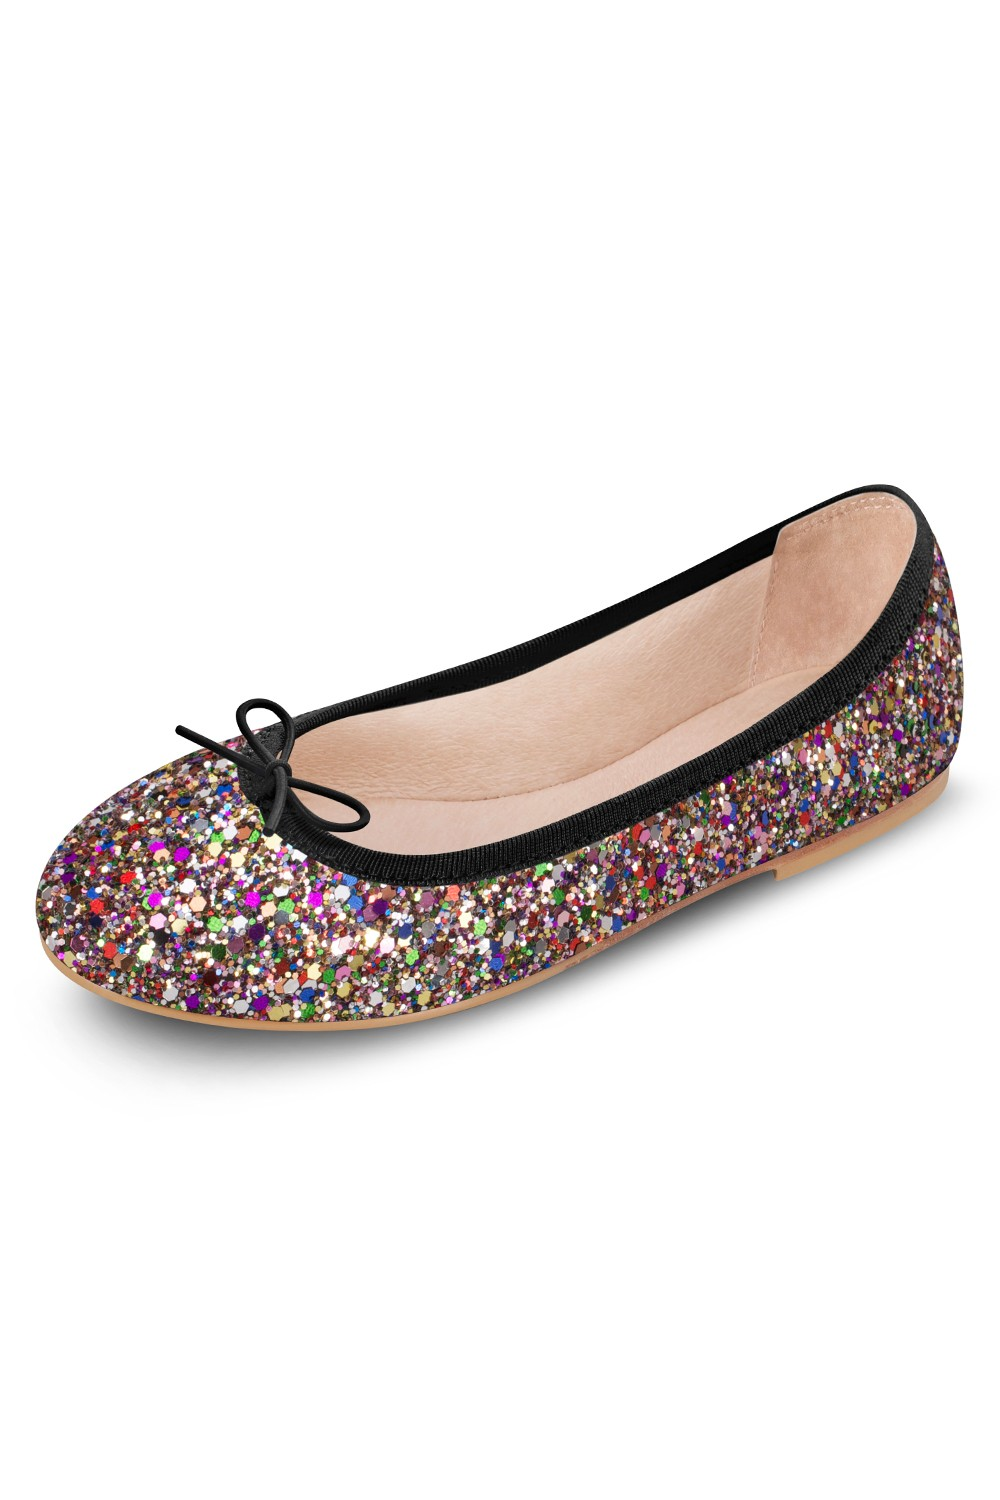 Sparkle - Girls Girls Fashion Shoes